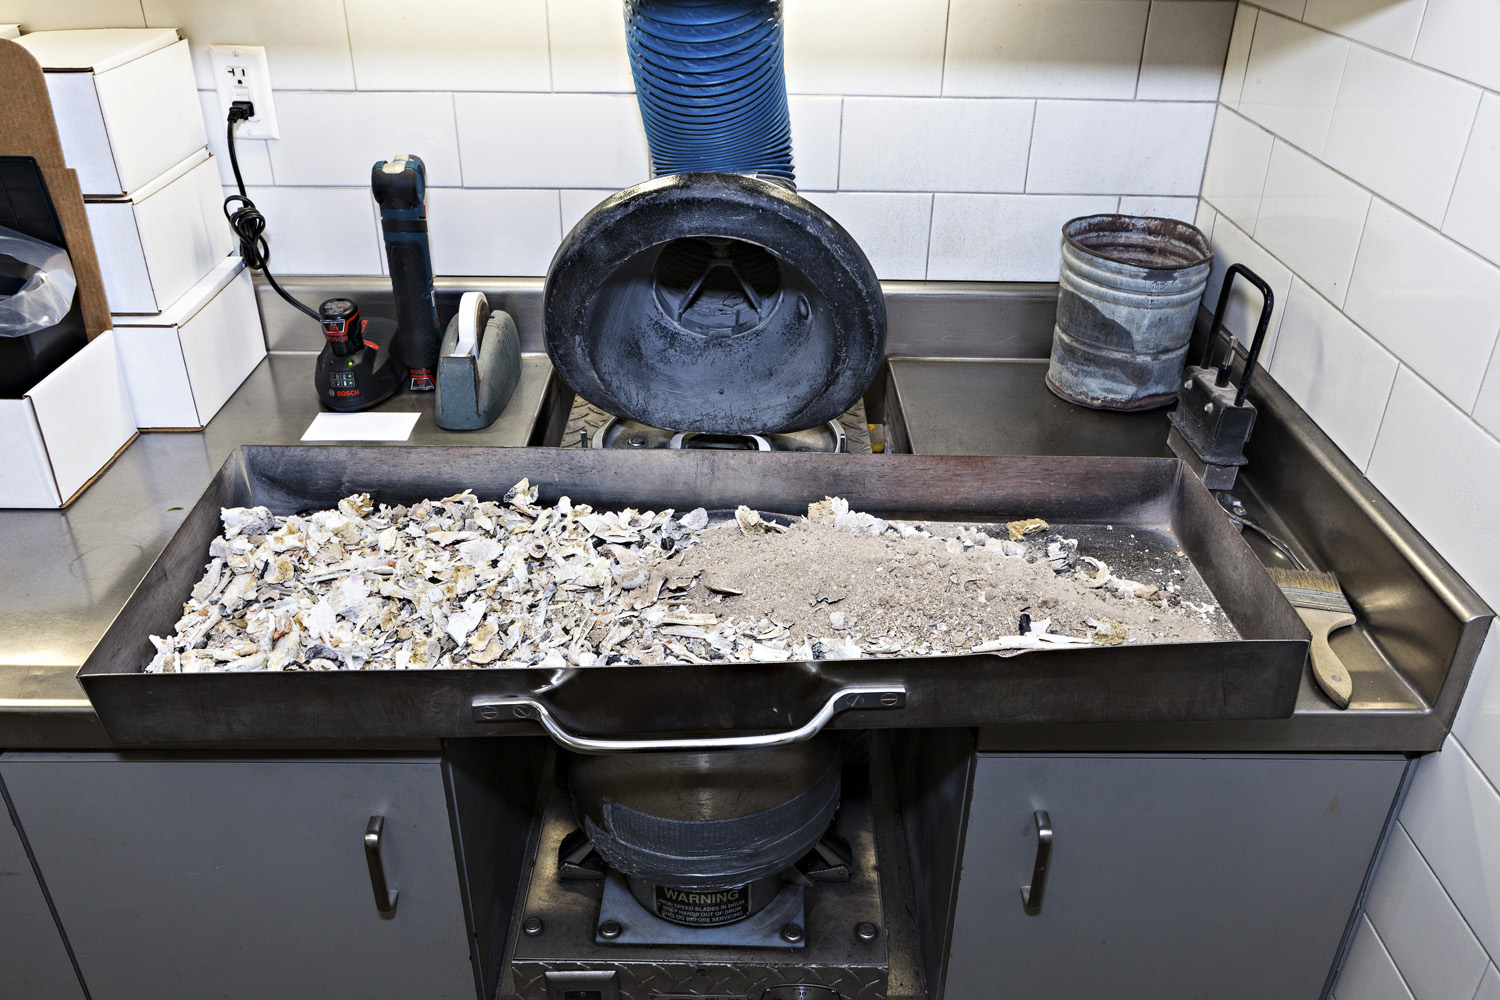 Fire-based cremation leaves behind ash but also substantial bone fragments, like those shown in this pan. These remains will be pulverized by the machine seen here beneath the pan before being returned to the family.